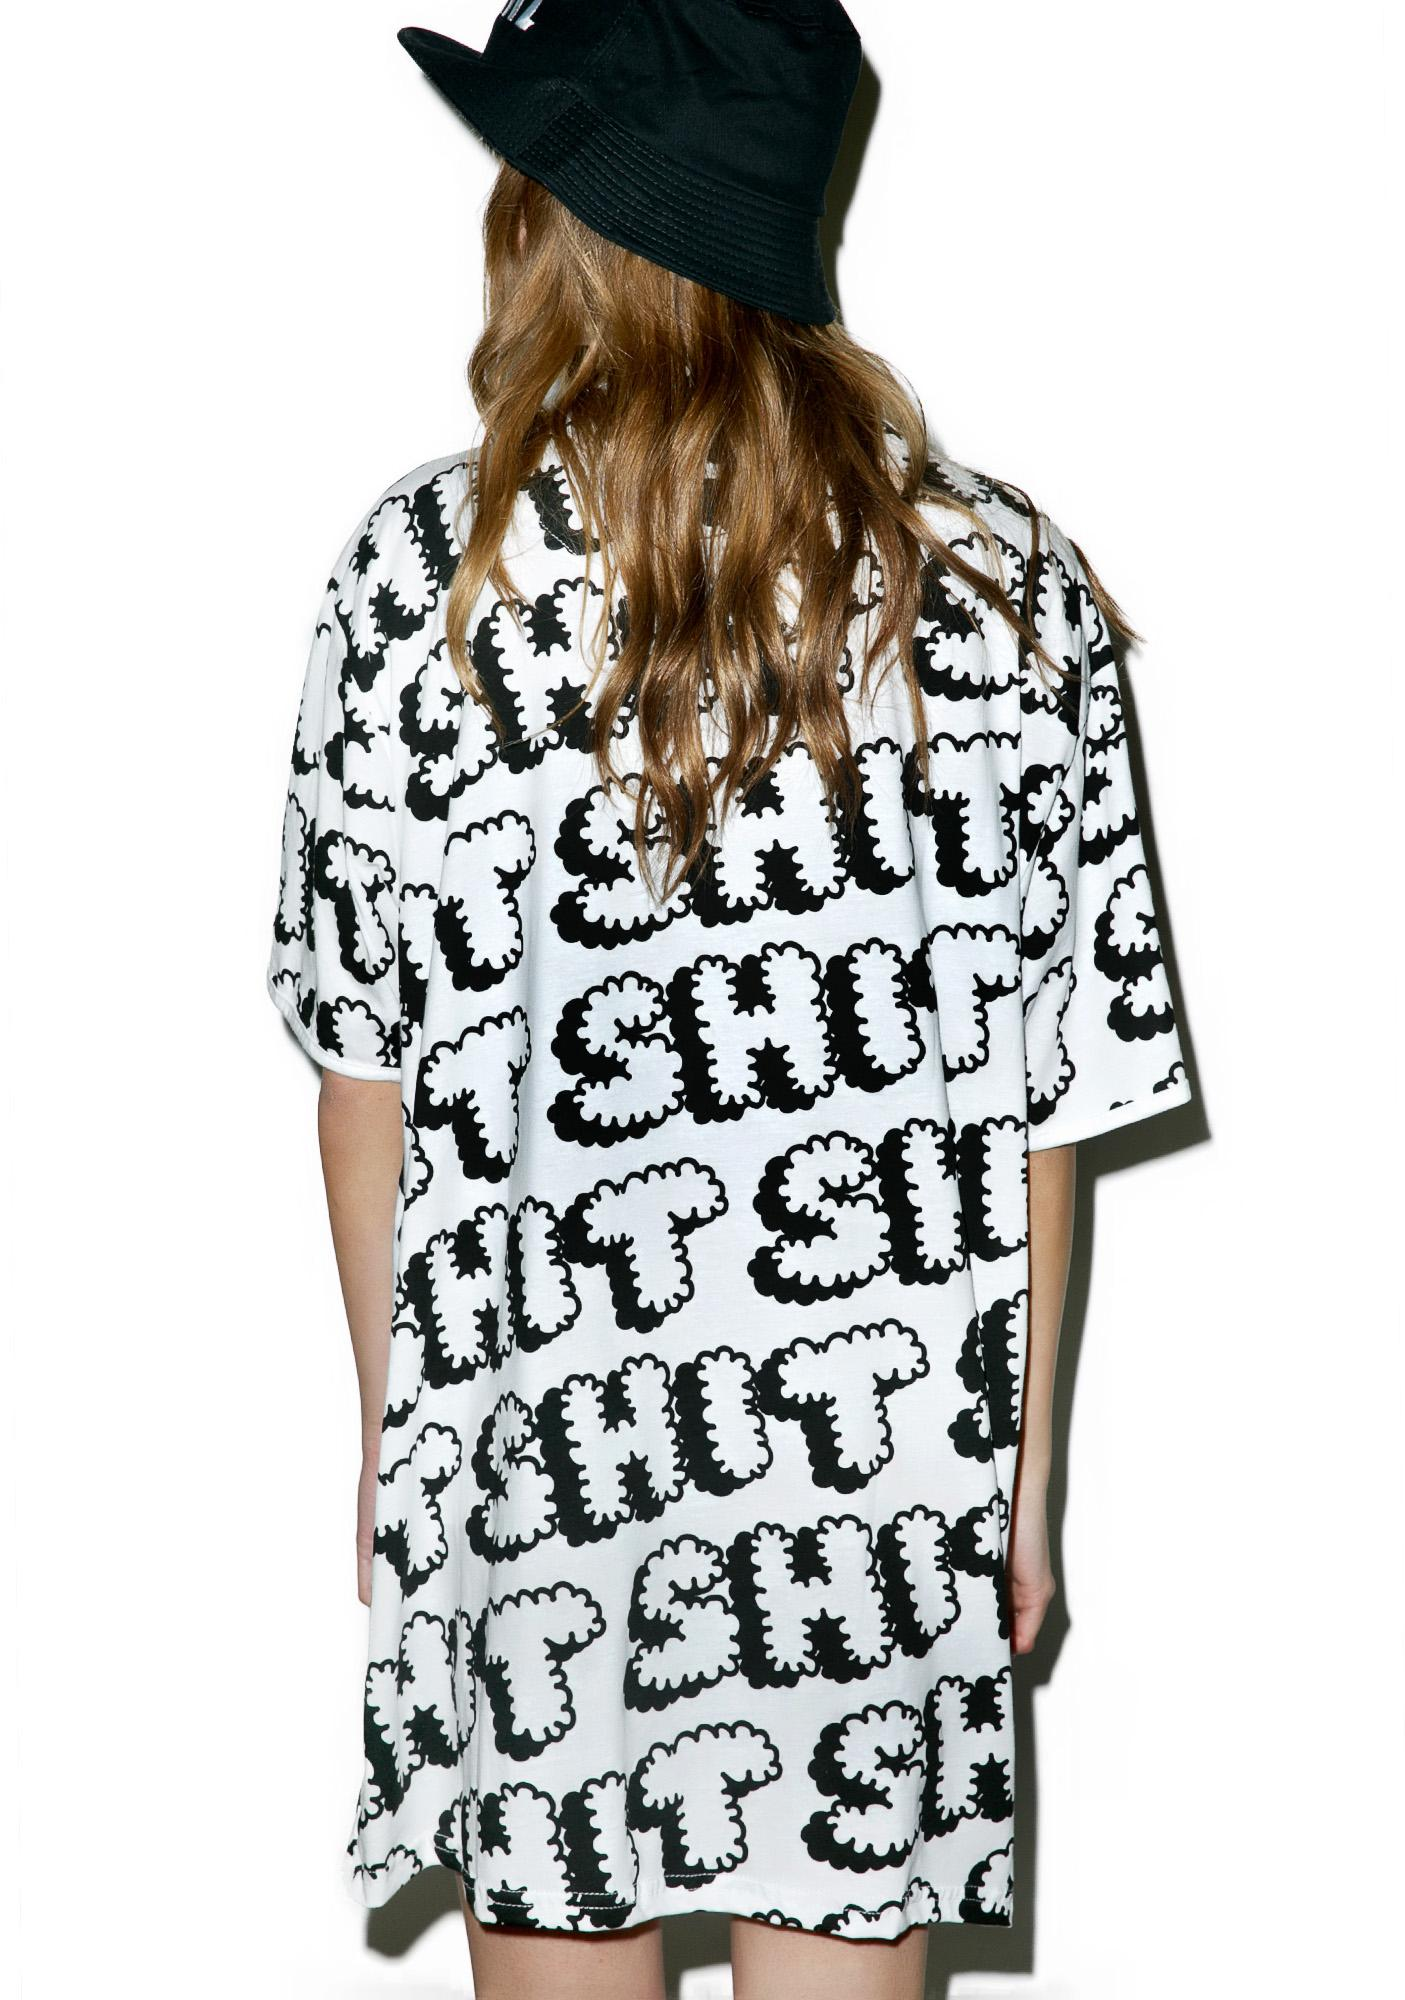 Cool Shit Get Your Shit Together Tee